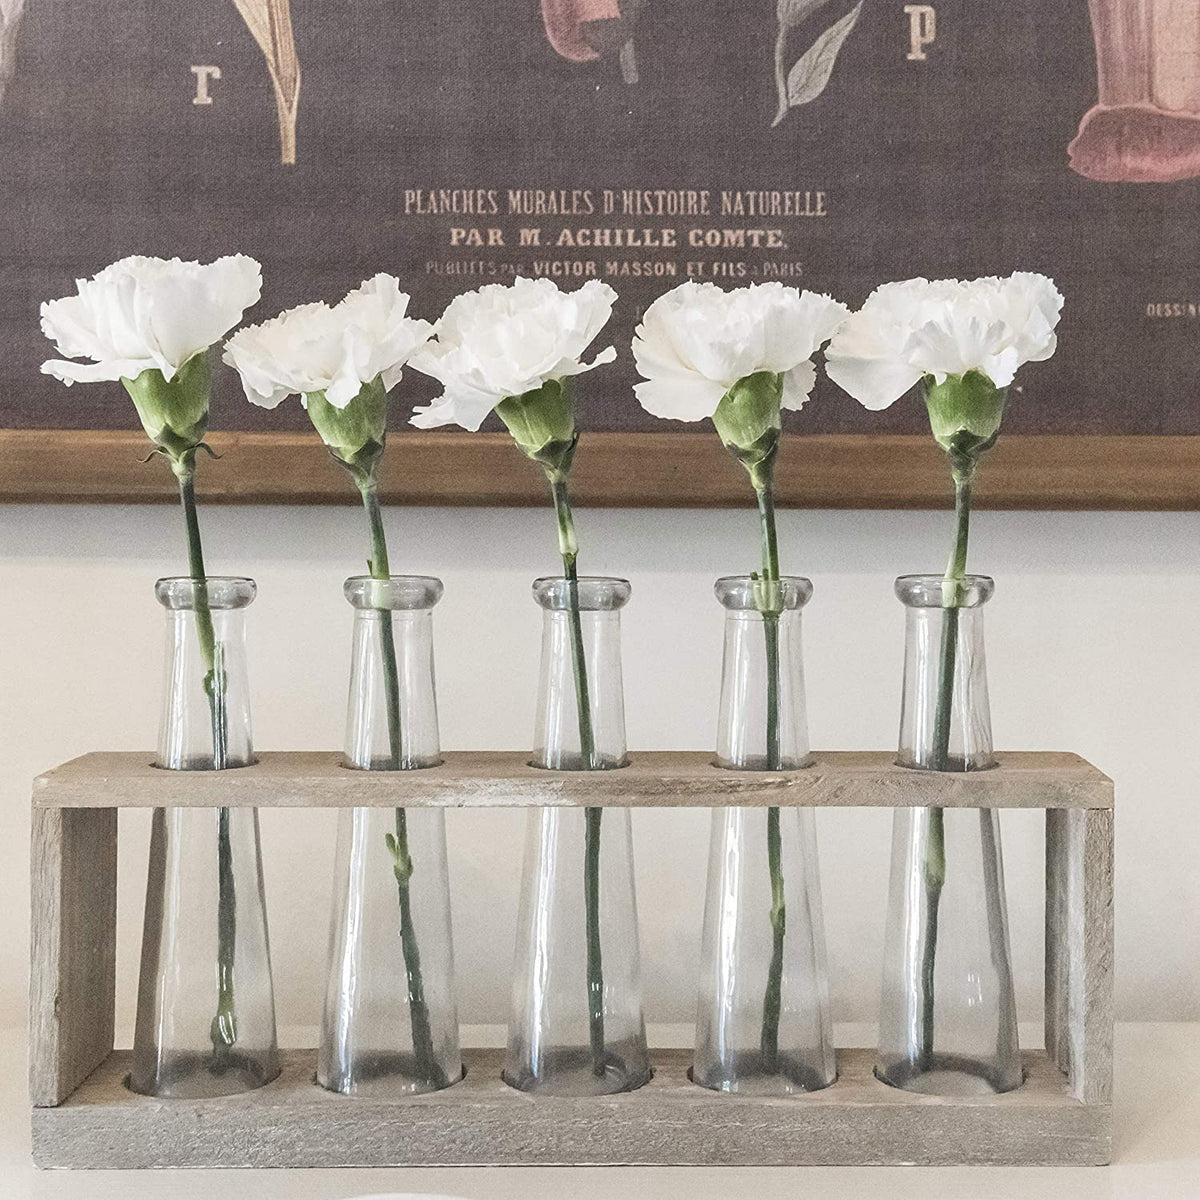 Creative Co-op - Wood Vase Holder with 5 Glass Vases